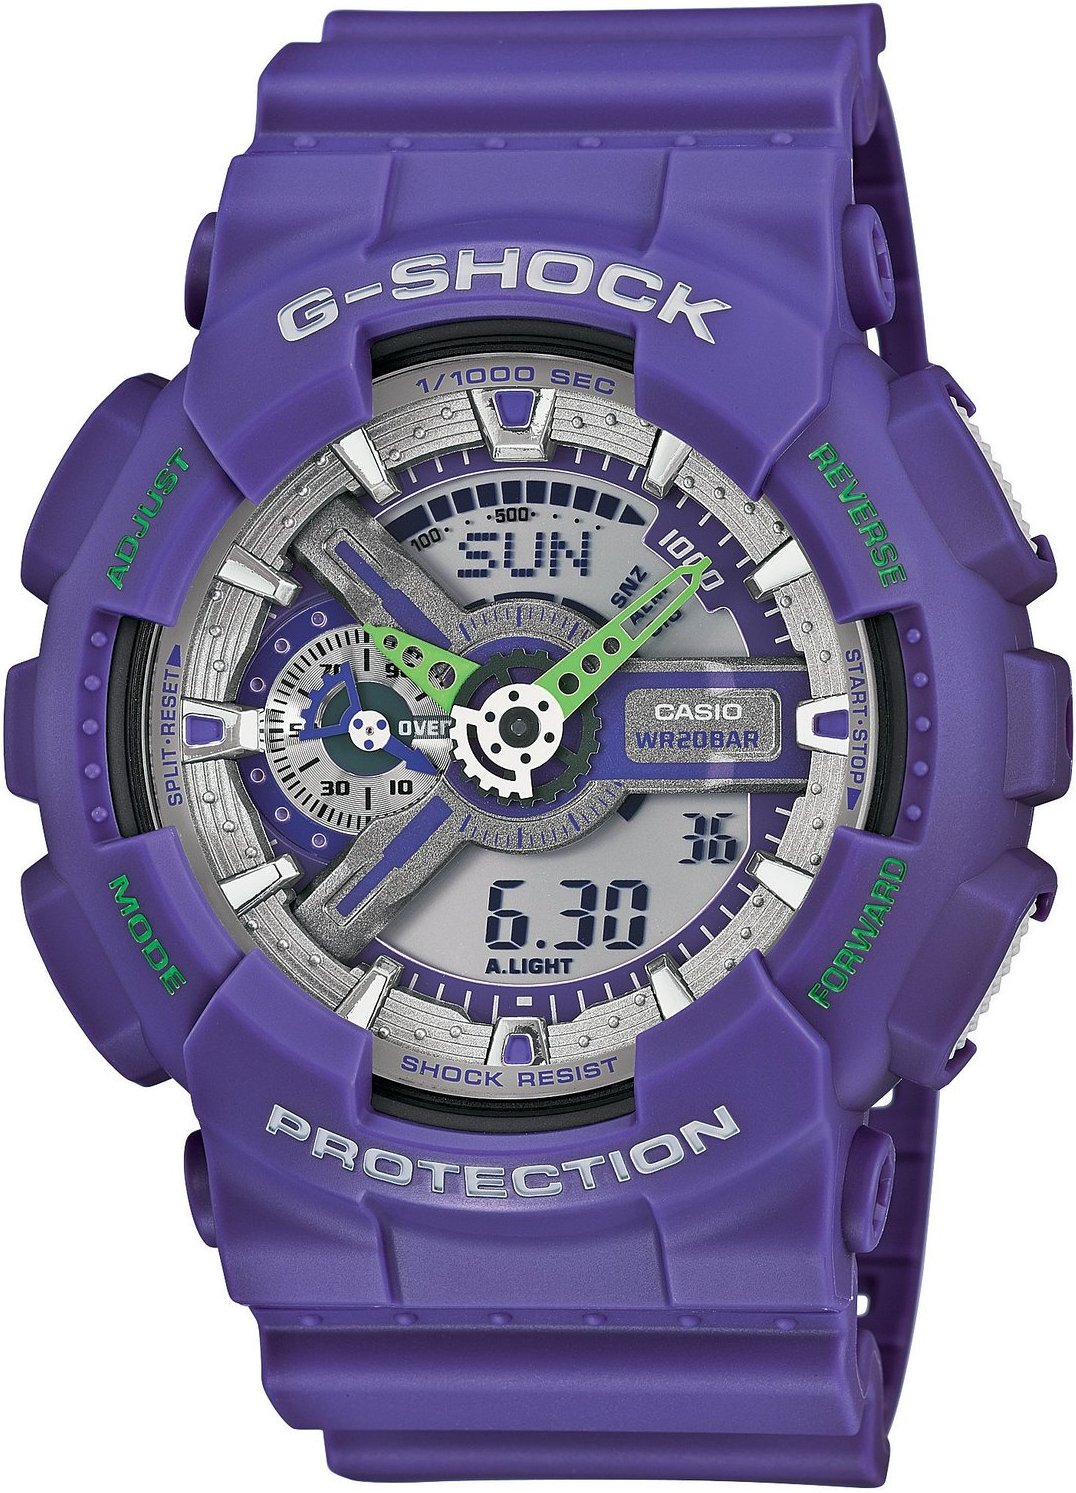 Casio G-shock G-Classic GA-110DN-6A casio часы casio gma s110mc 6a коллекция g shock